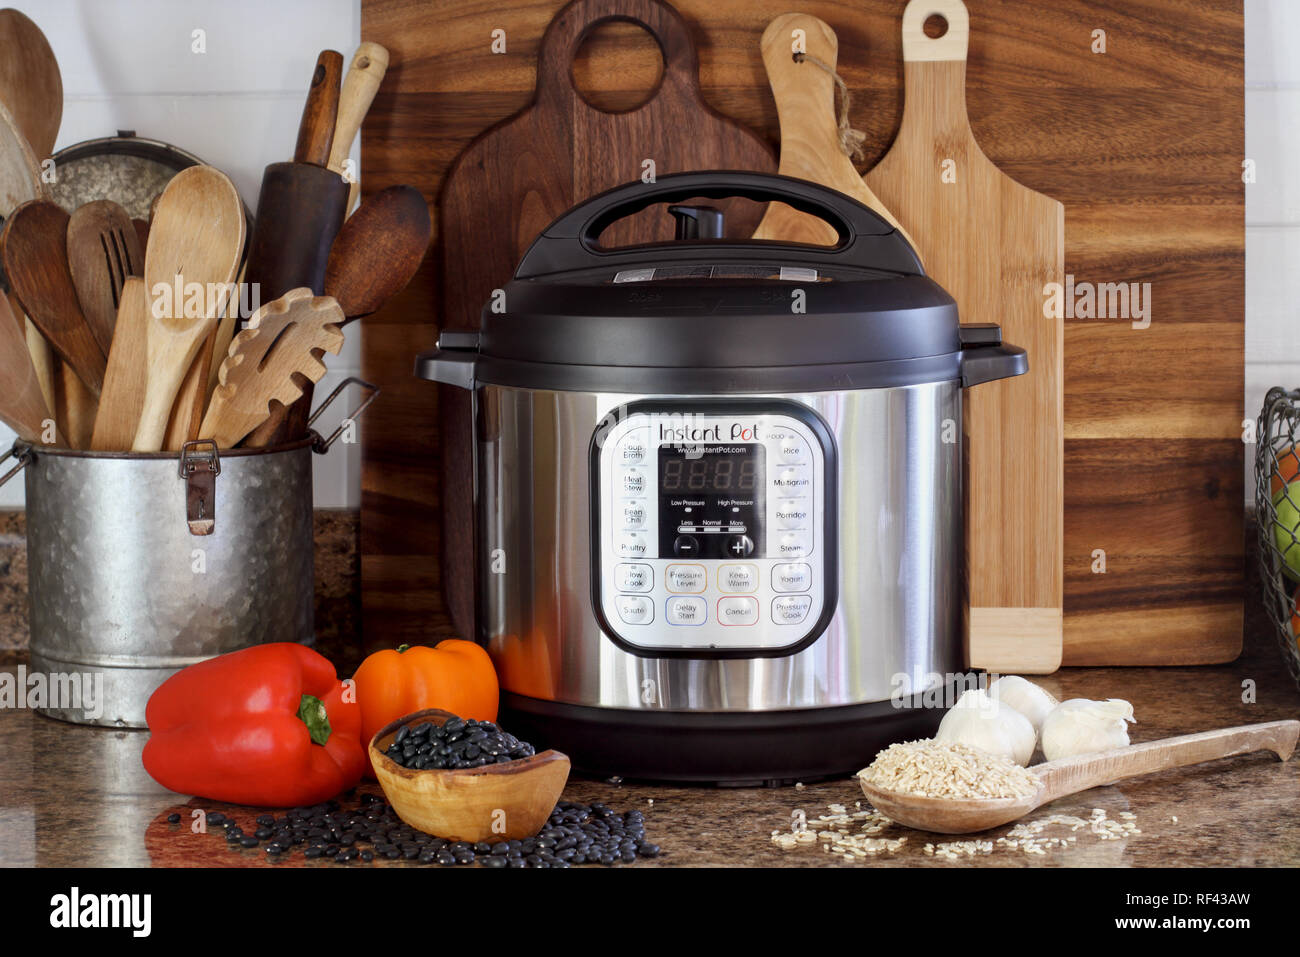 Breeding, KY, USA - January 08, 2019: Instant Pot pressure cooker on kitchen counter with beans and rice. - Stock Image